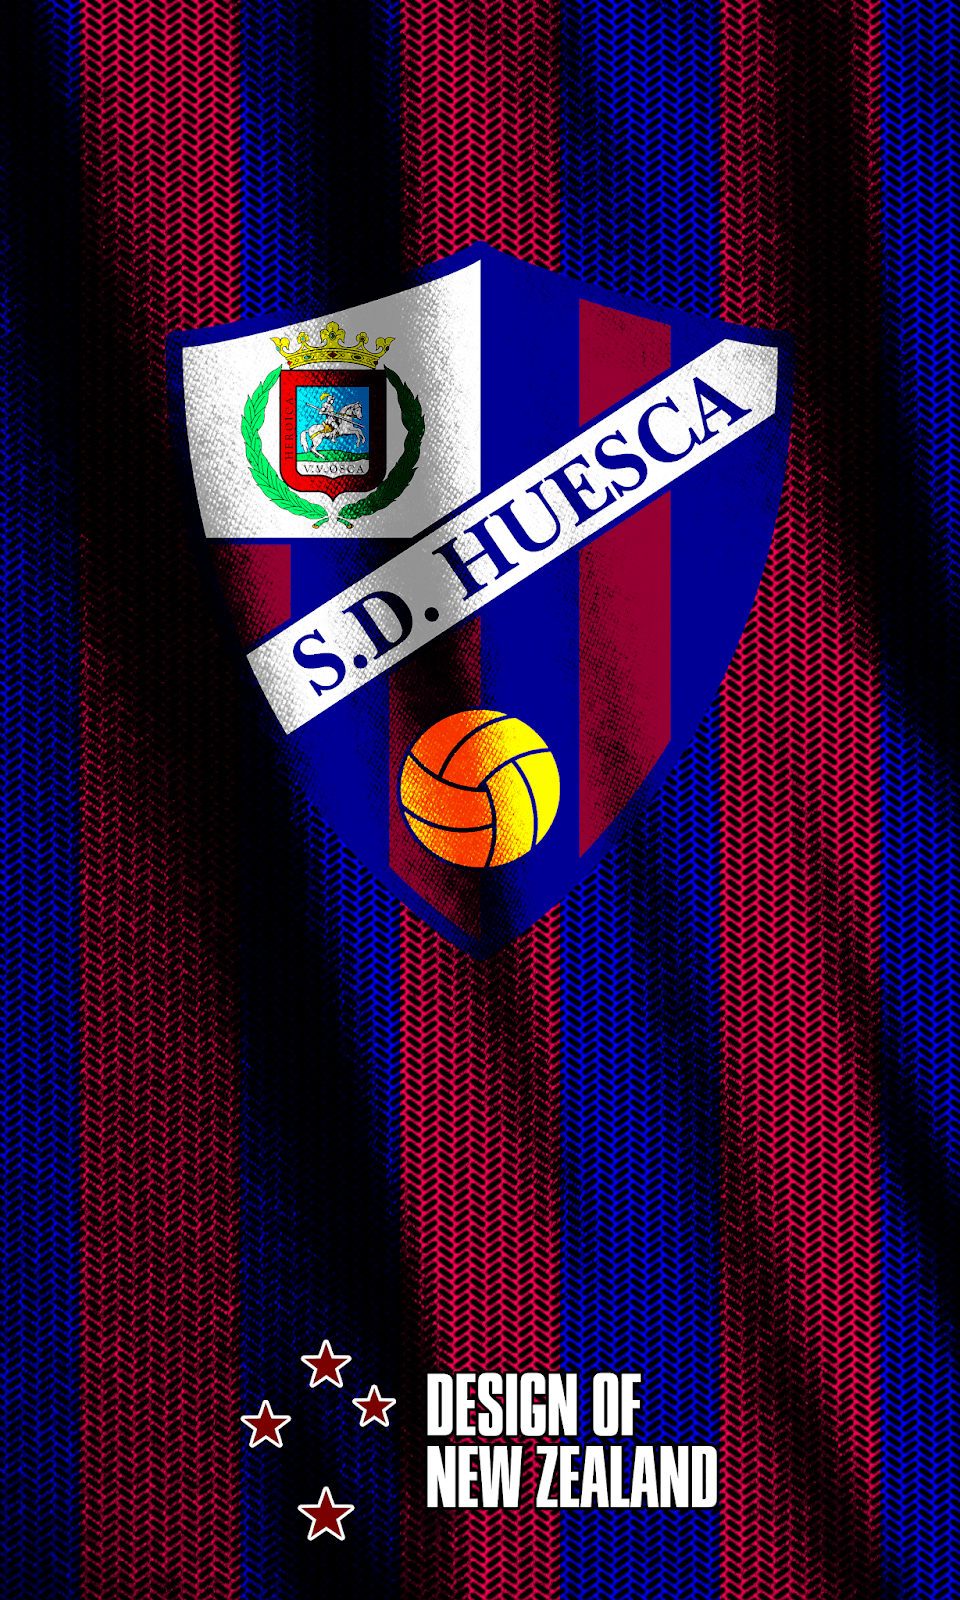 Wallpaper SD Huesca | The Football Illustrated, Inc. | Pinterest ...